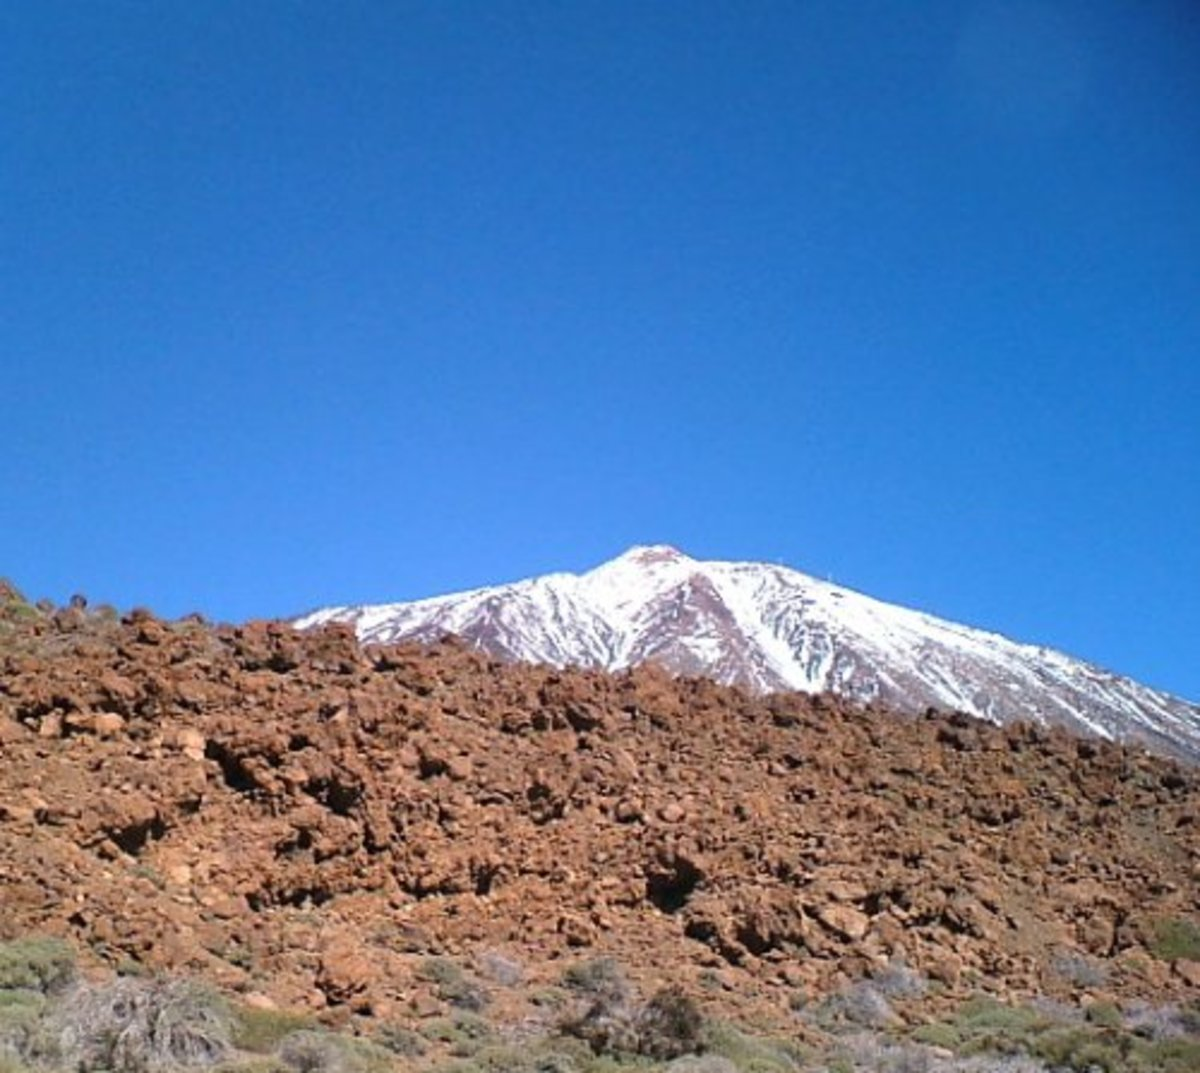 Mt Teide's snow-capped peak and red volcanic rock